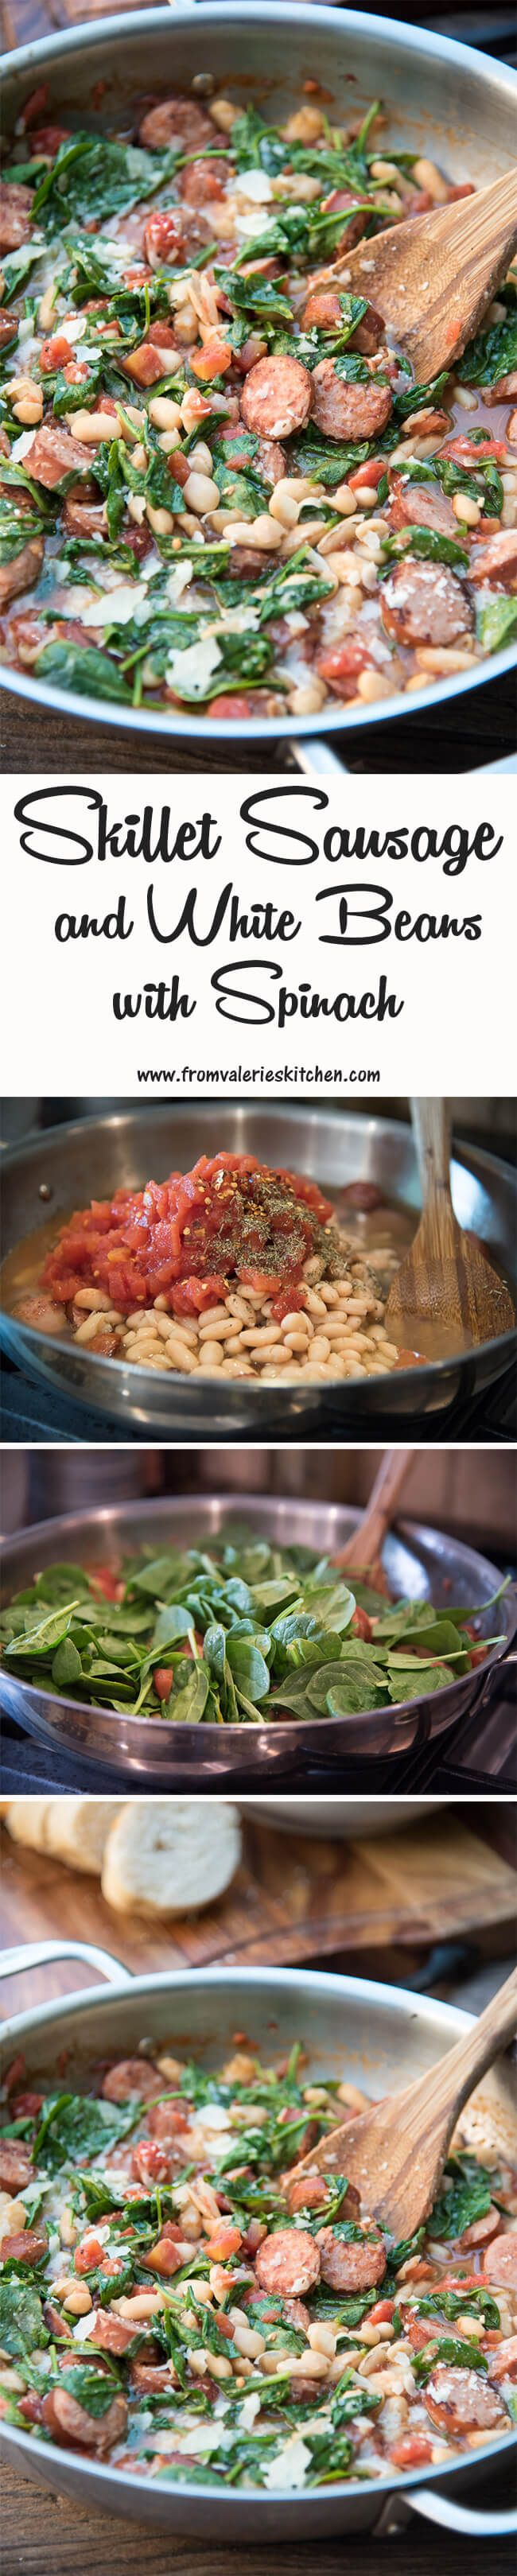 Skillet Sausage and White Beans with Spinach ~ http://www.fromvalerieskitchen.com